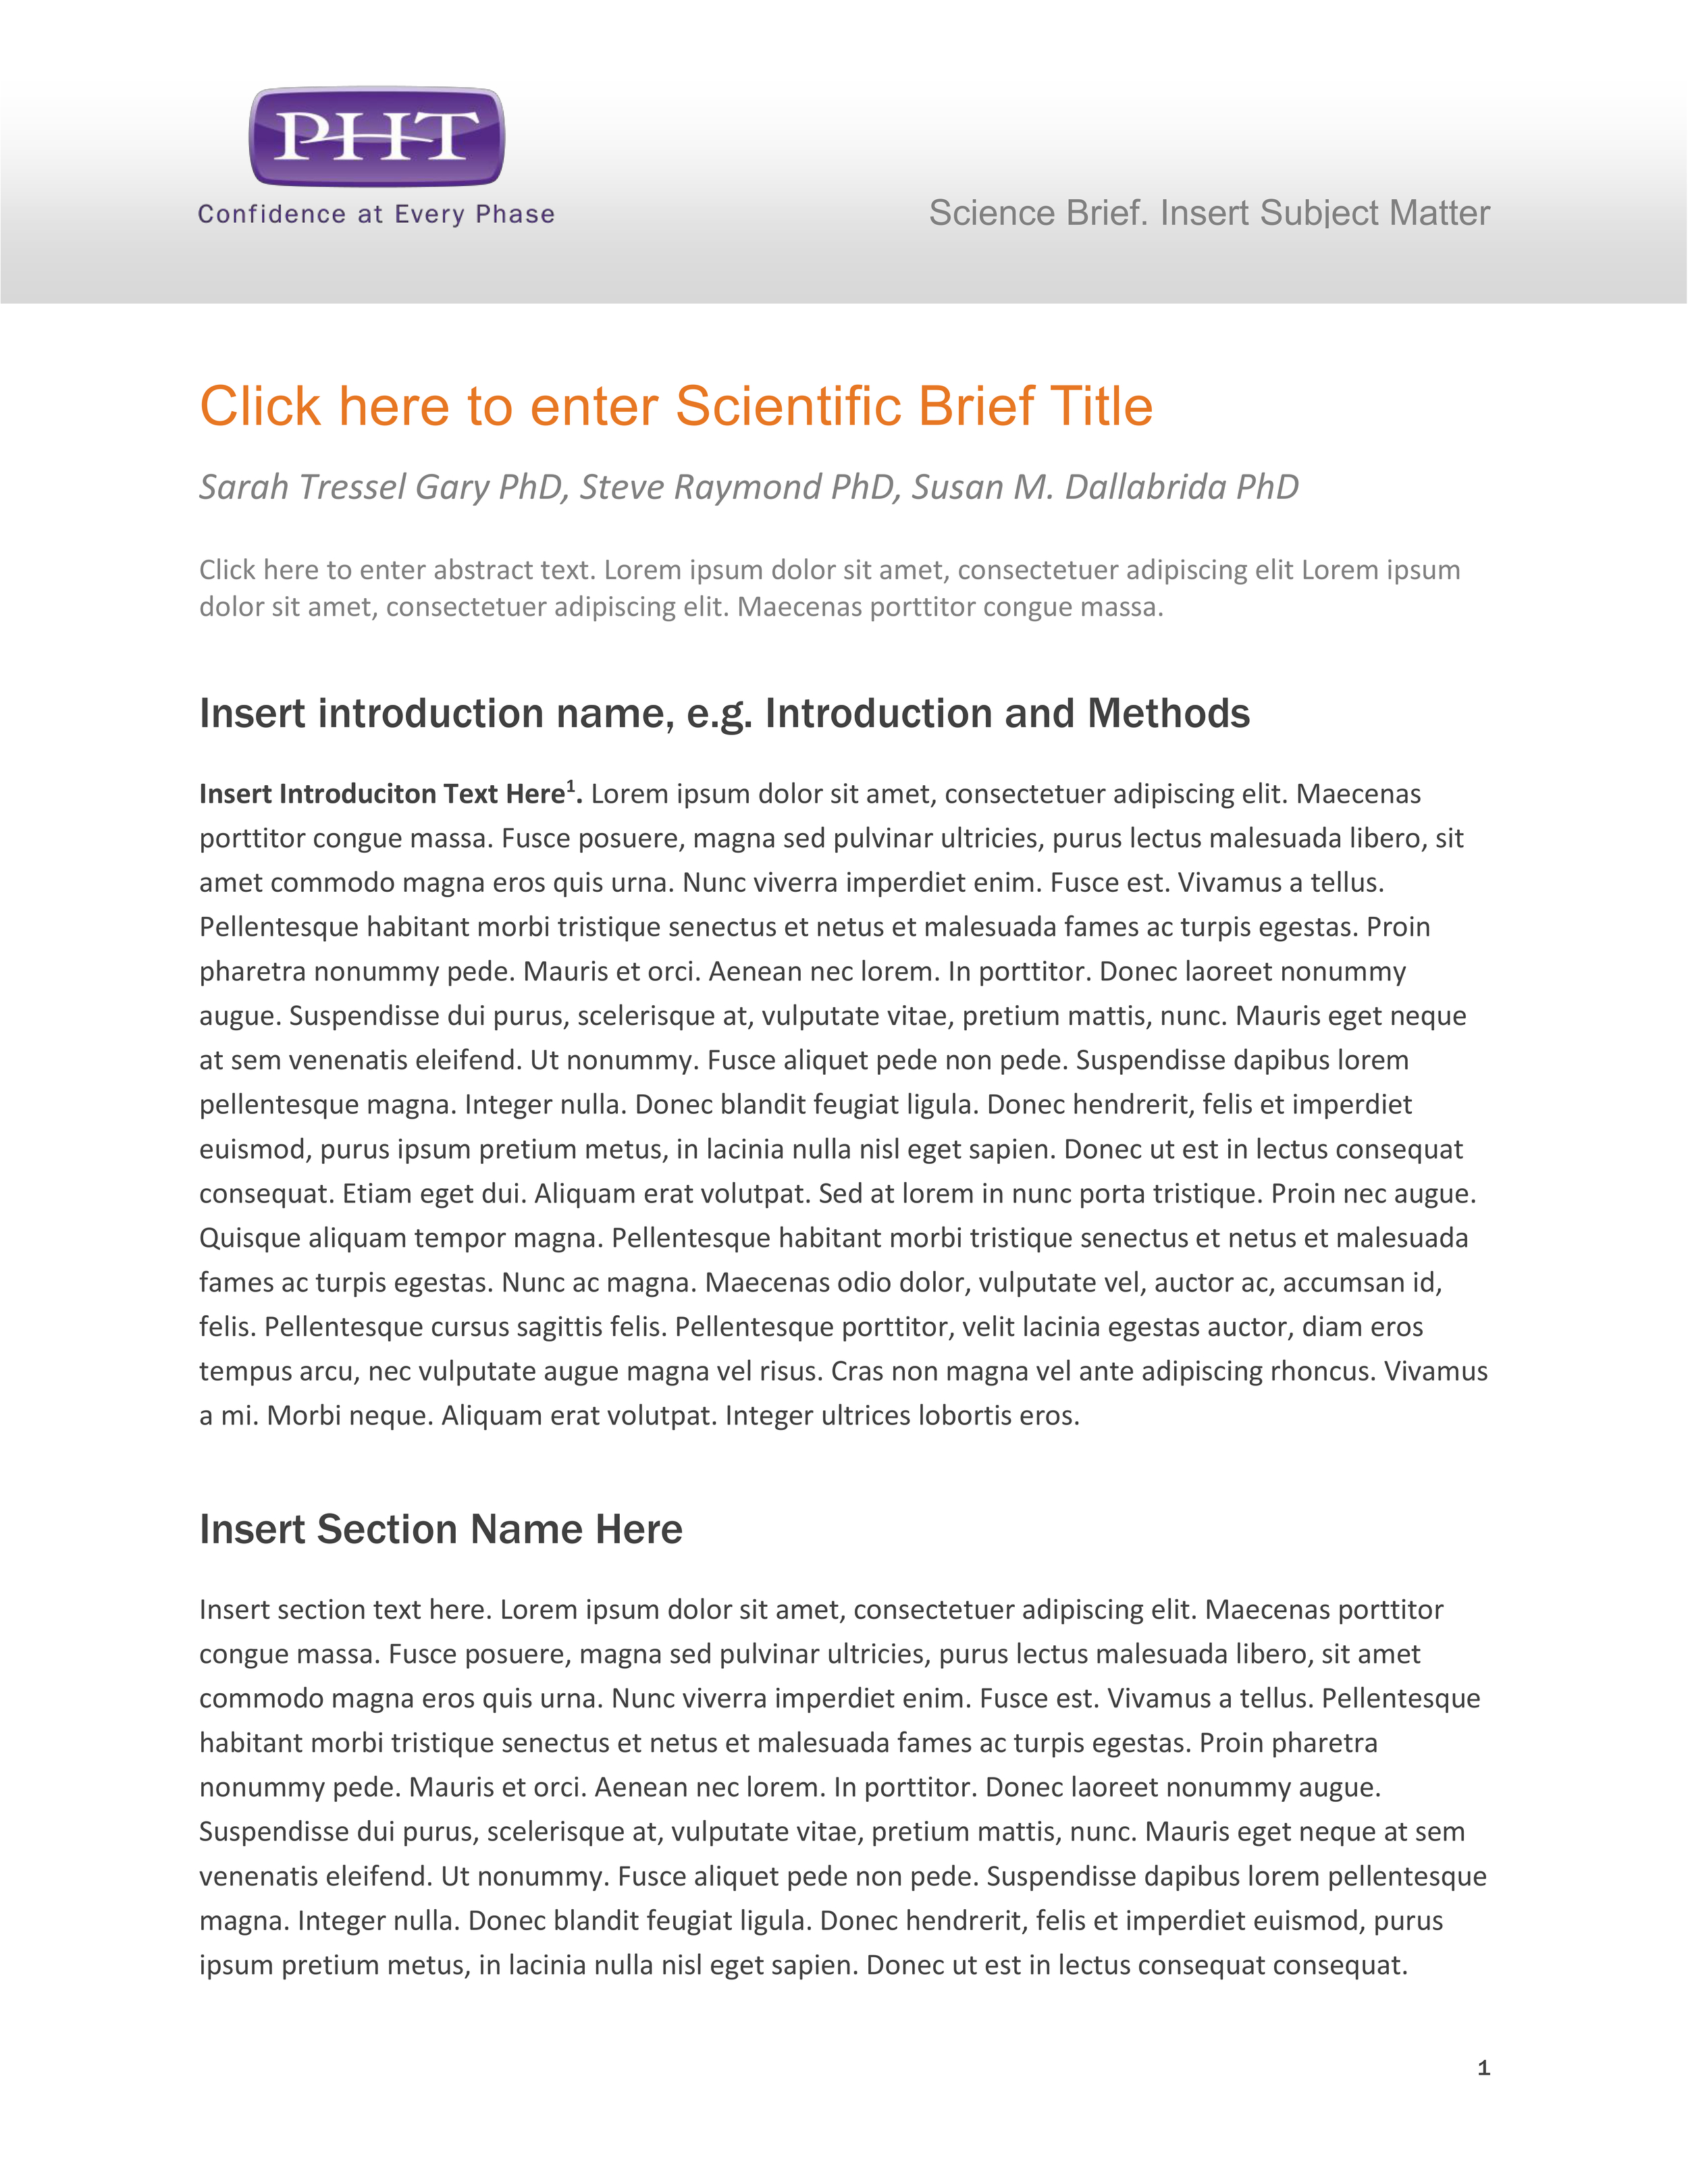 Science Brief Template